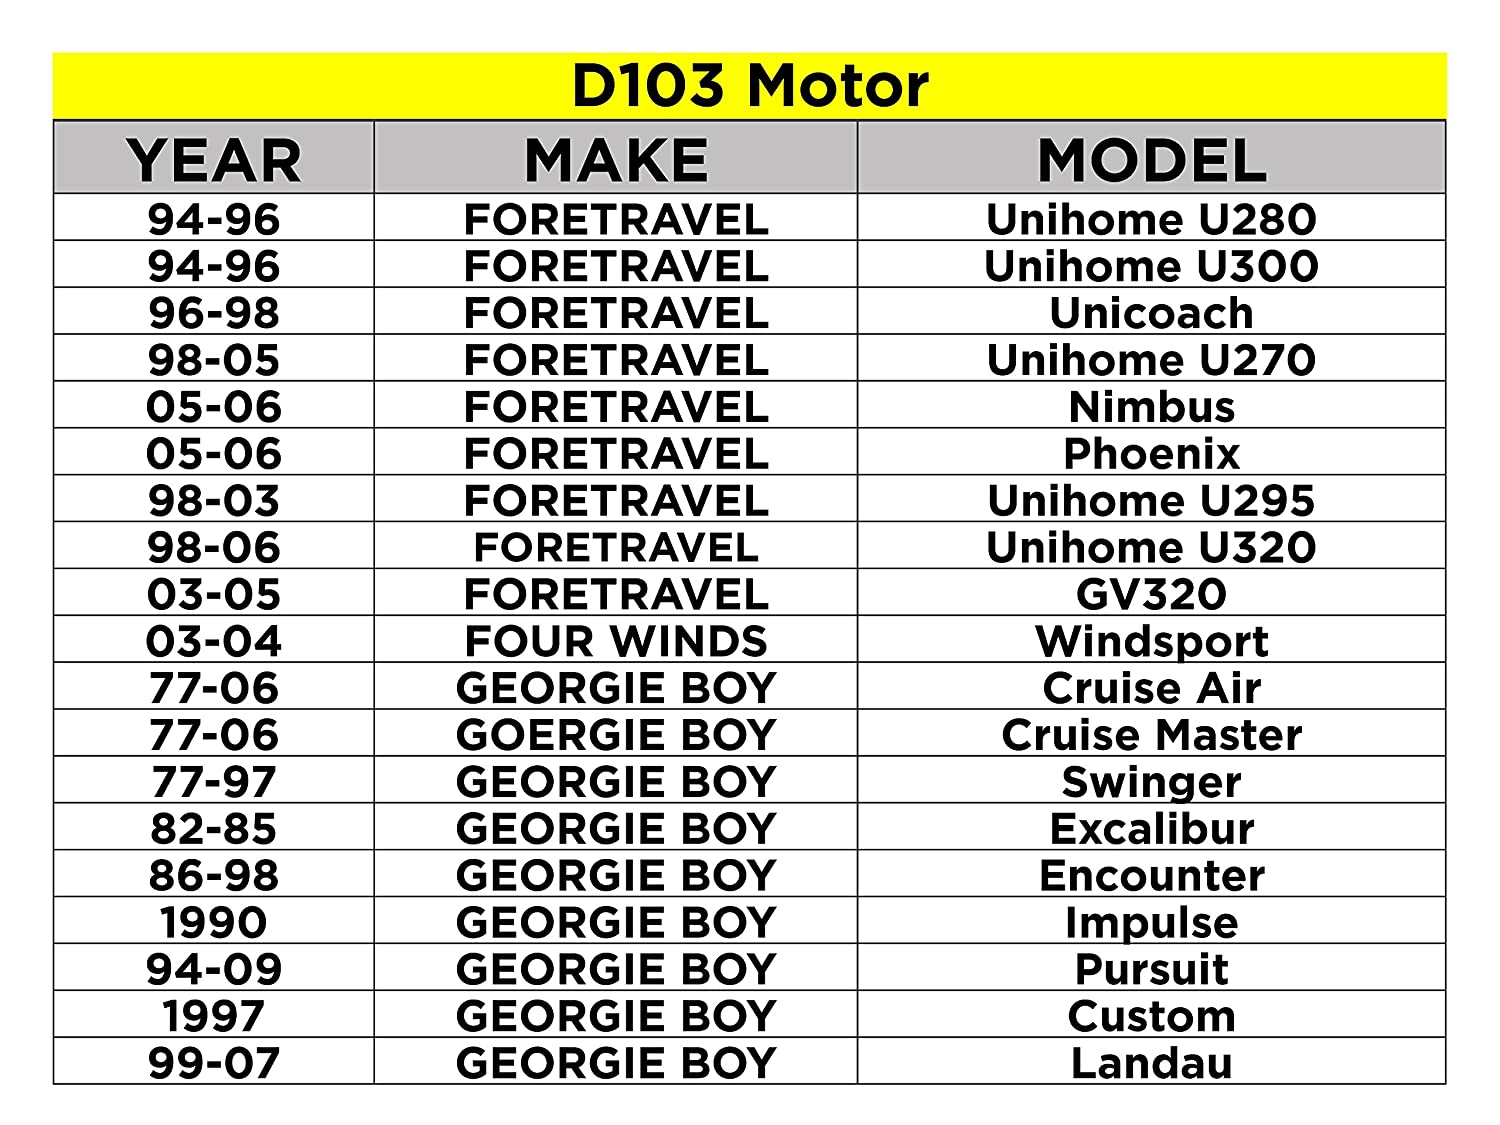 Fj40 Wiper Motor Wiring Trusted Diagrams Georgie Boy Diagram Wexco H132 Wire Center U2022 Parts